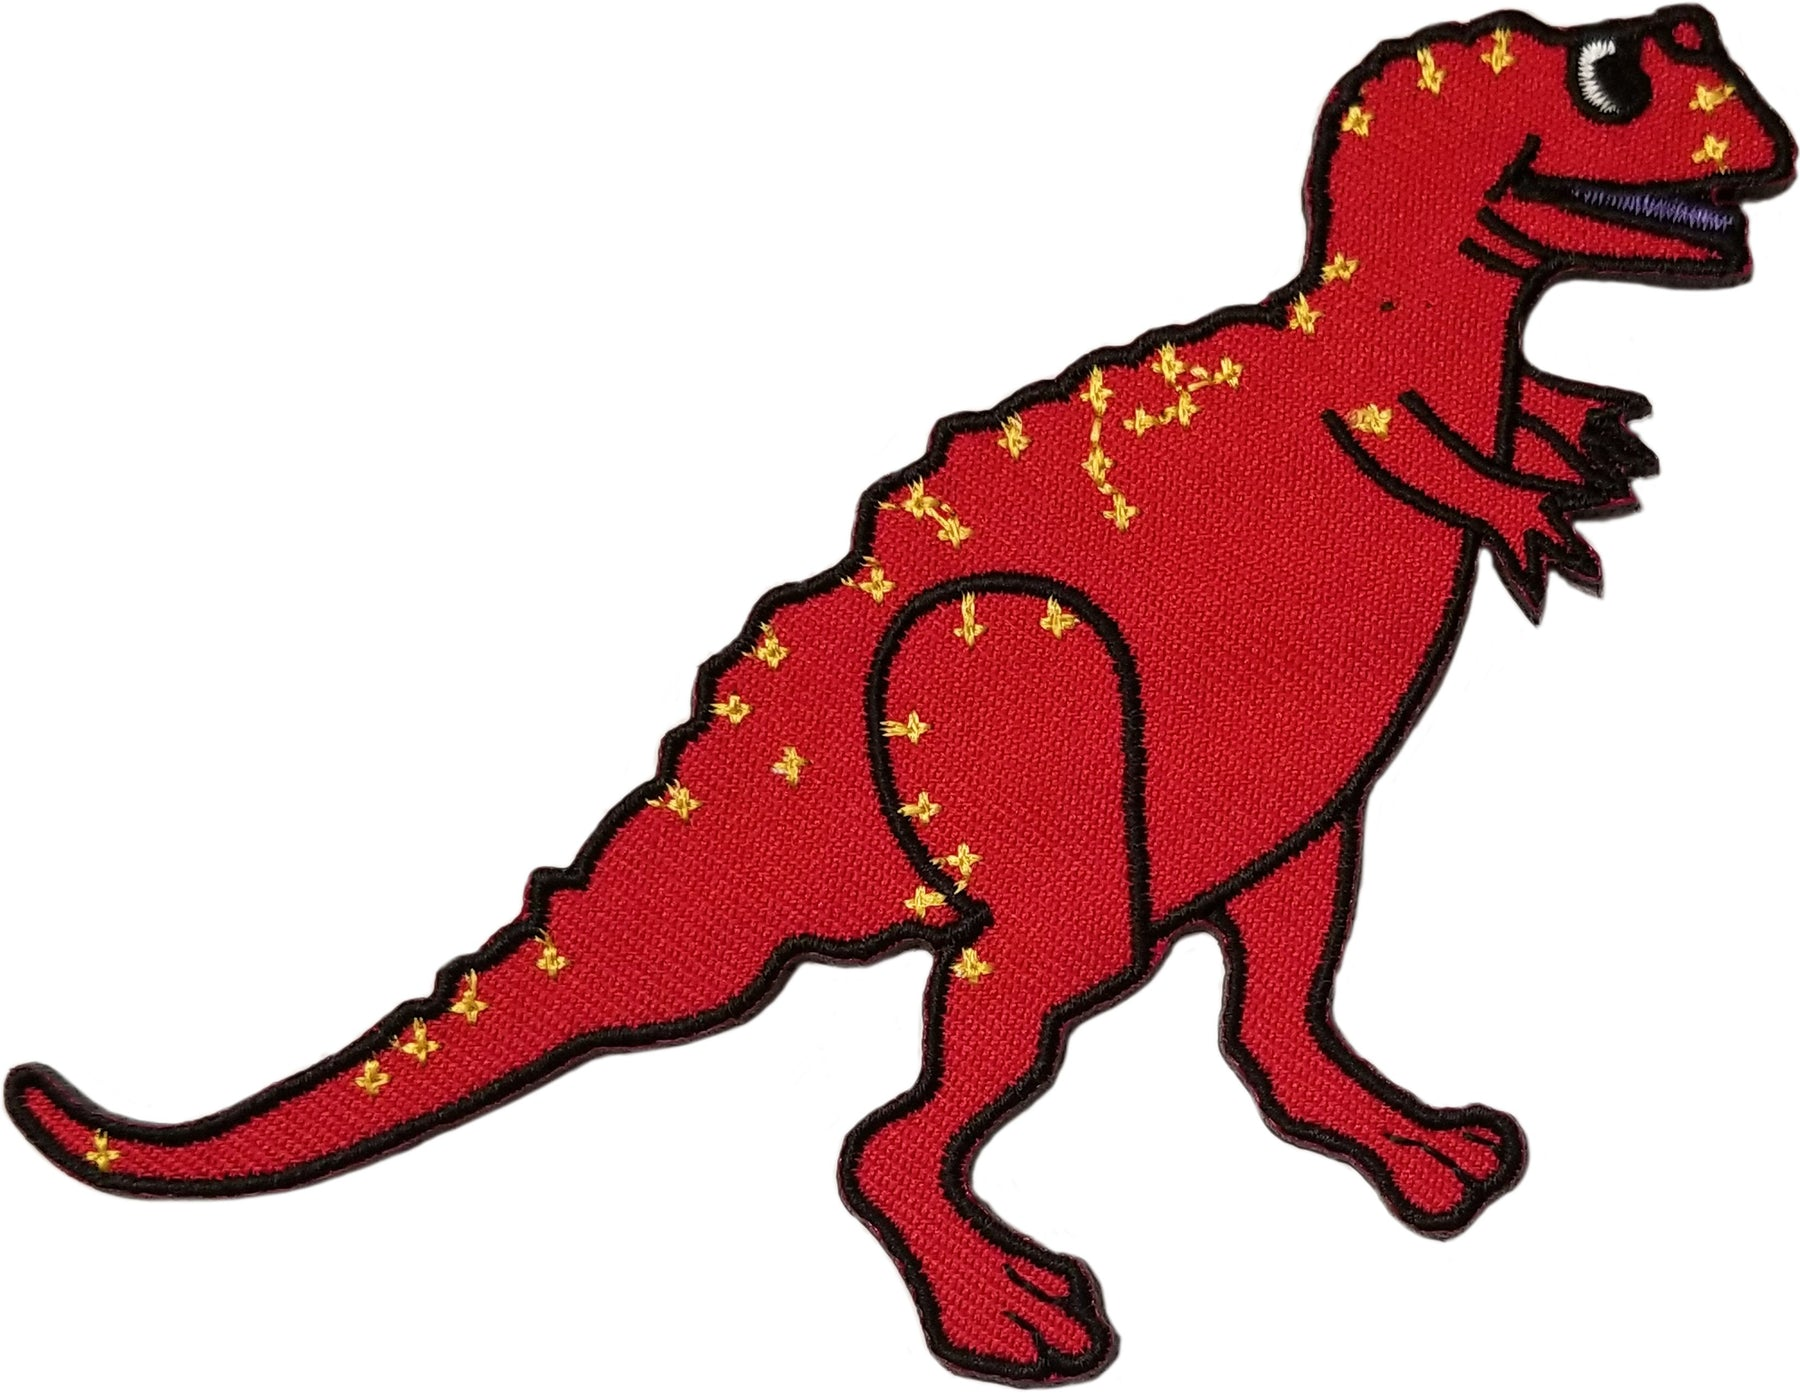 C&D Visionary Patch Red Dinosaur